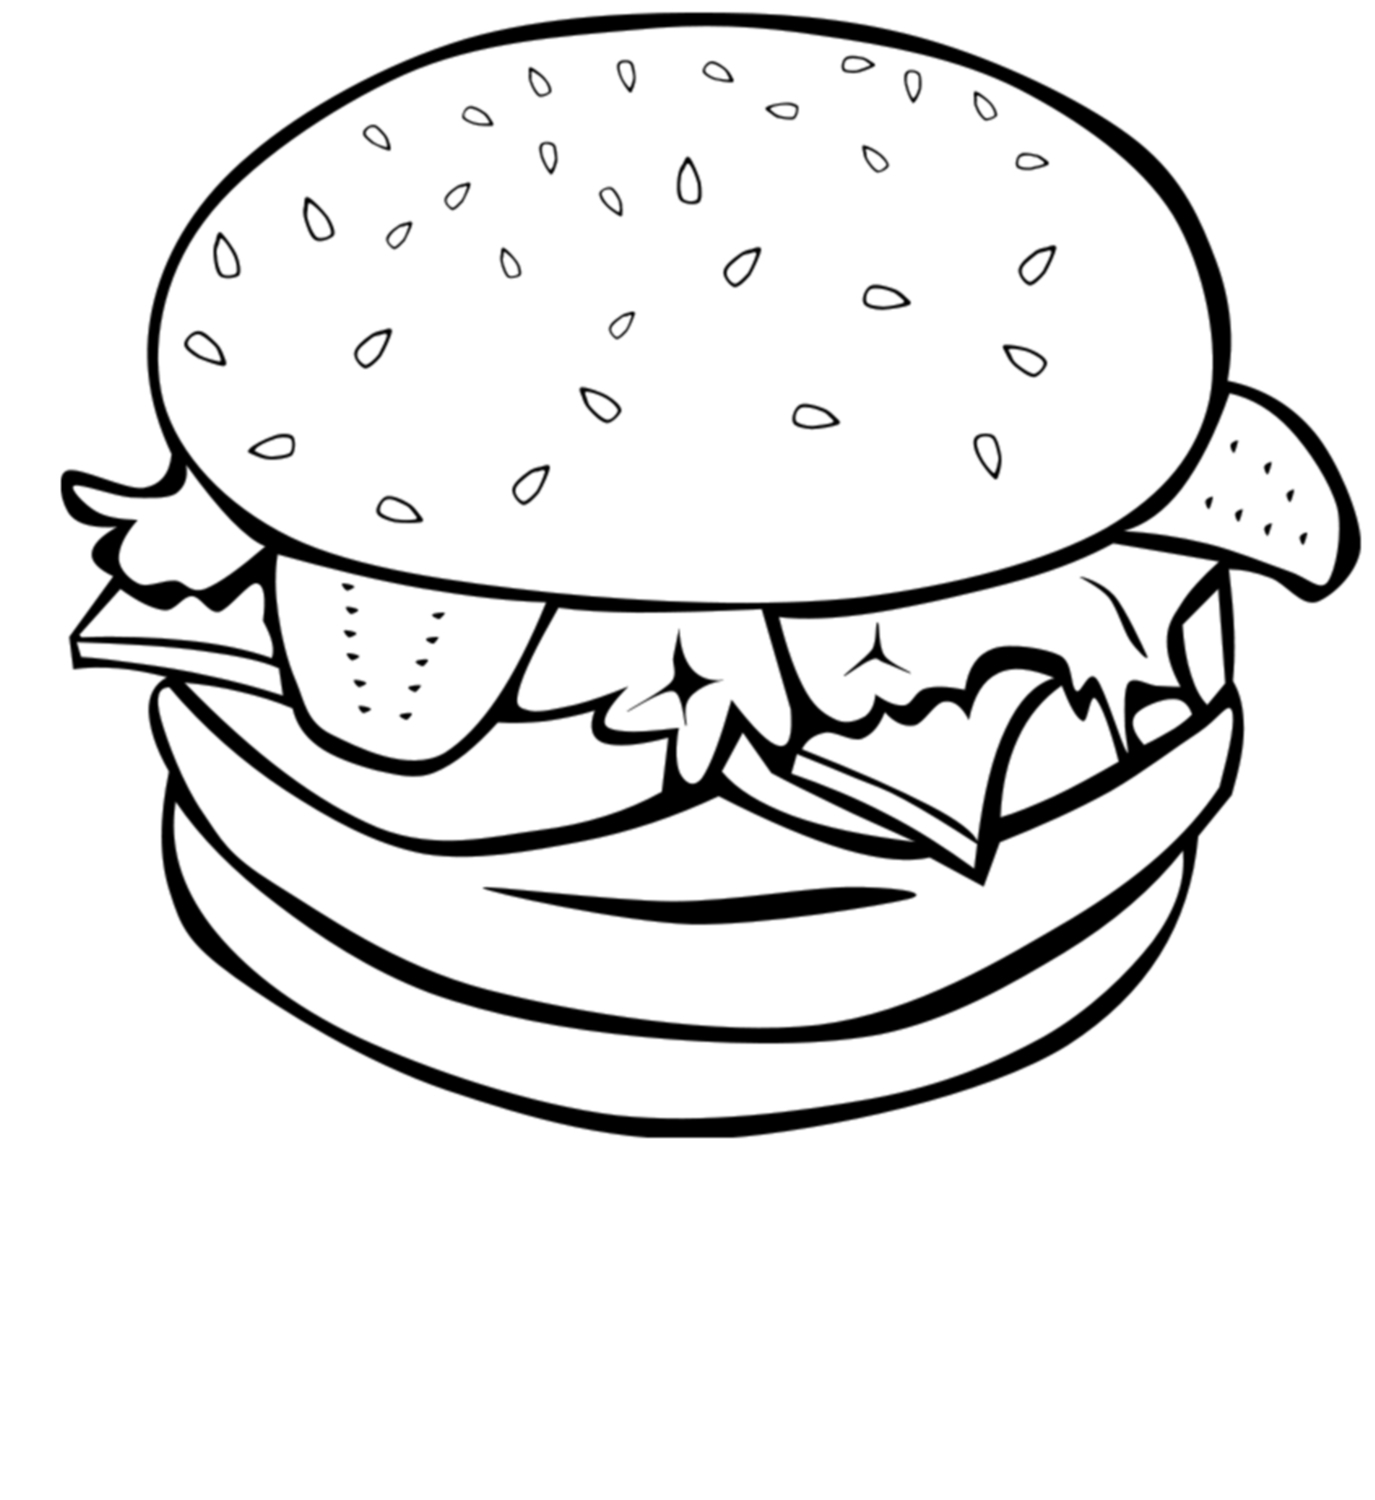 Cheeseburger clipart black and white. Burger the best in